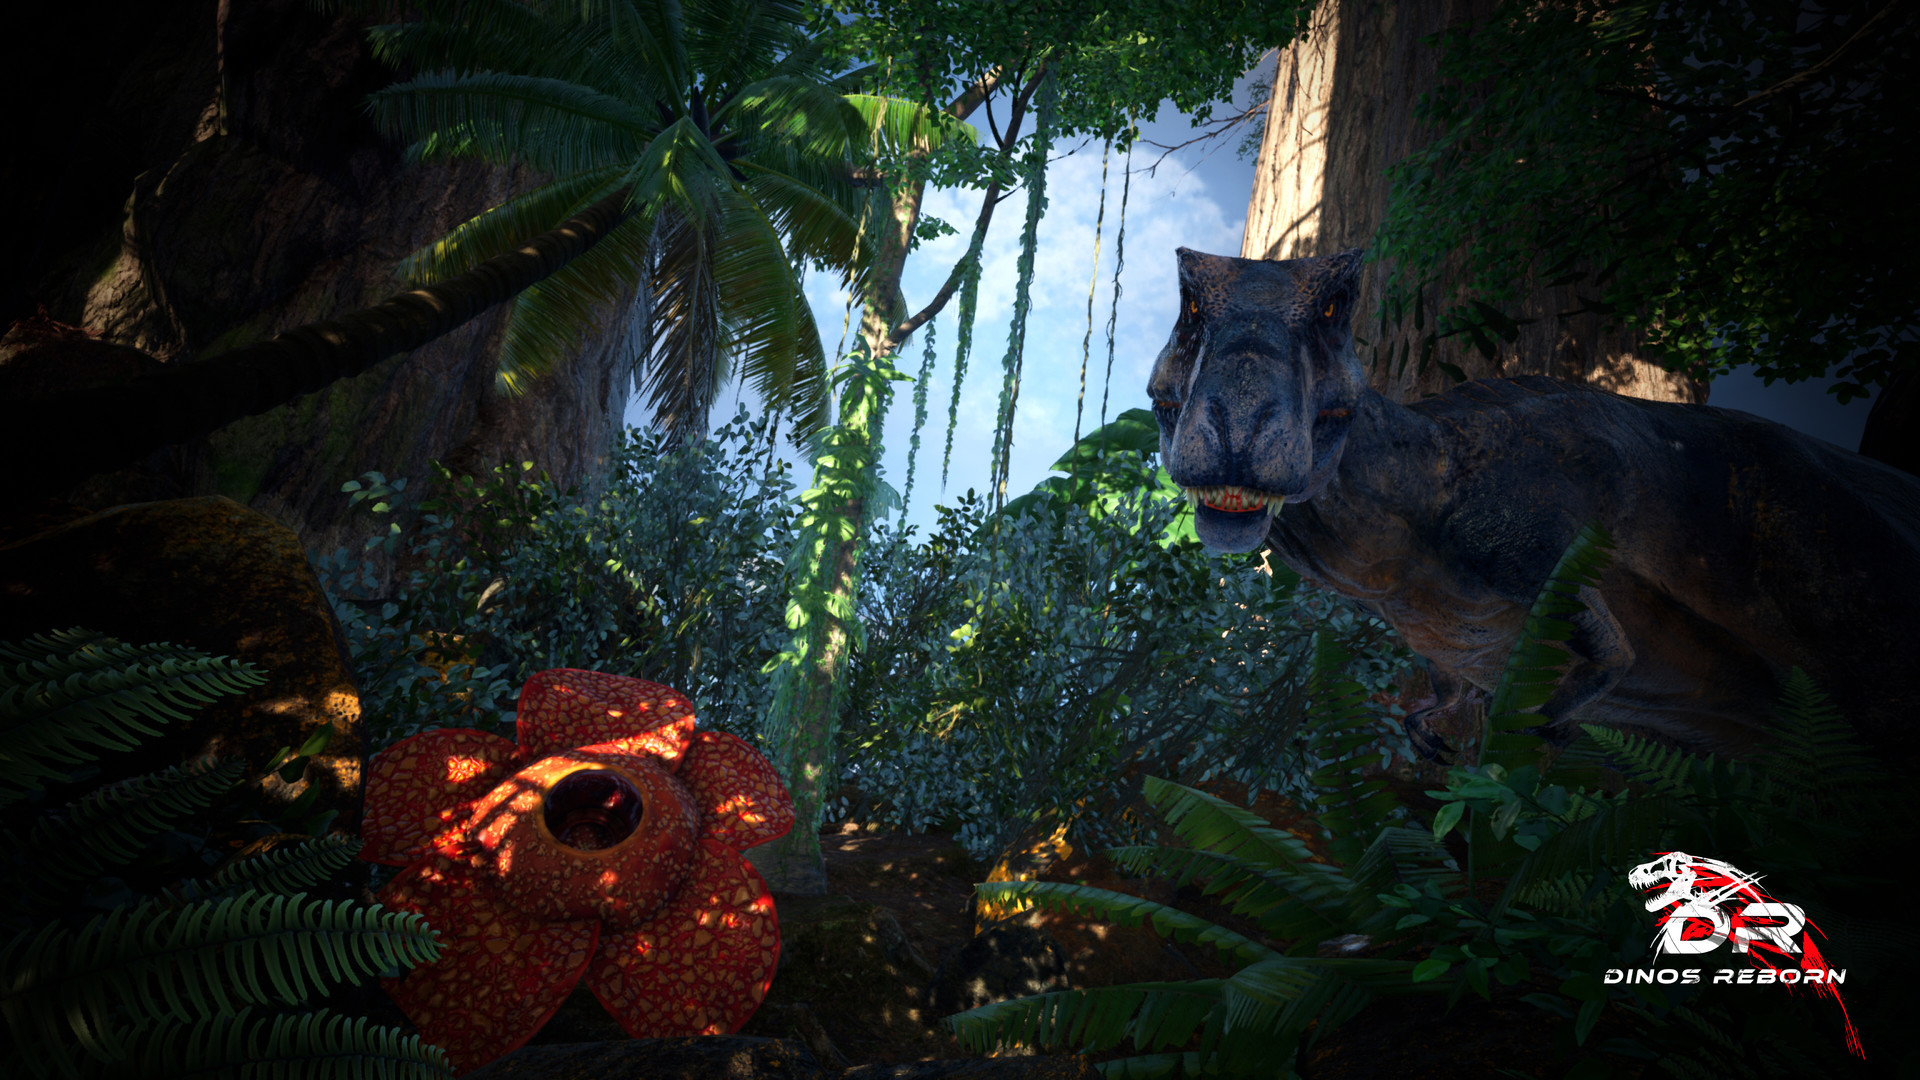 Dinos Reborn is presented as a new survival that points to Xbox